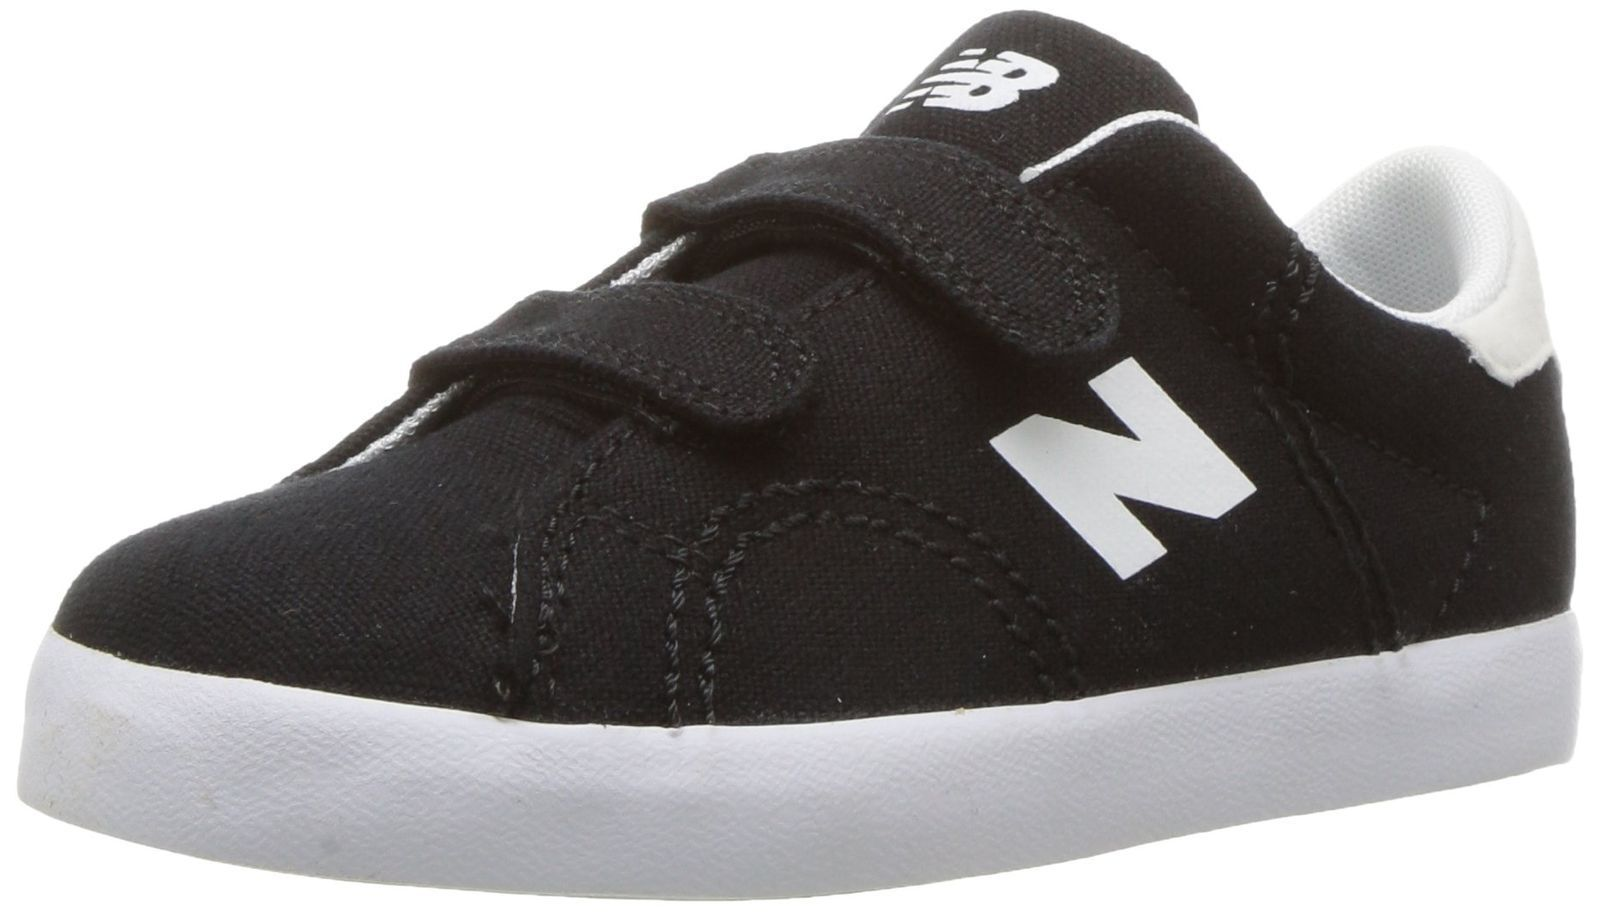 New Balance KVCRTBWI Boys Hook and Loop Sneaker Black White